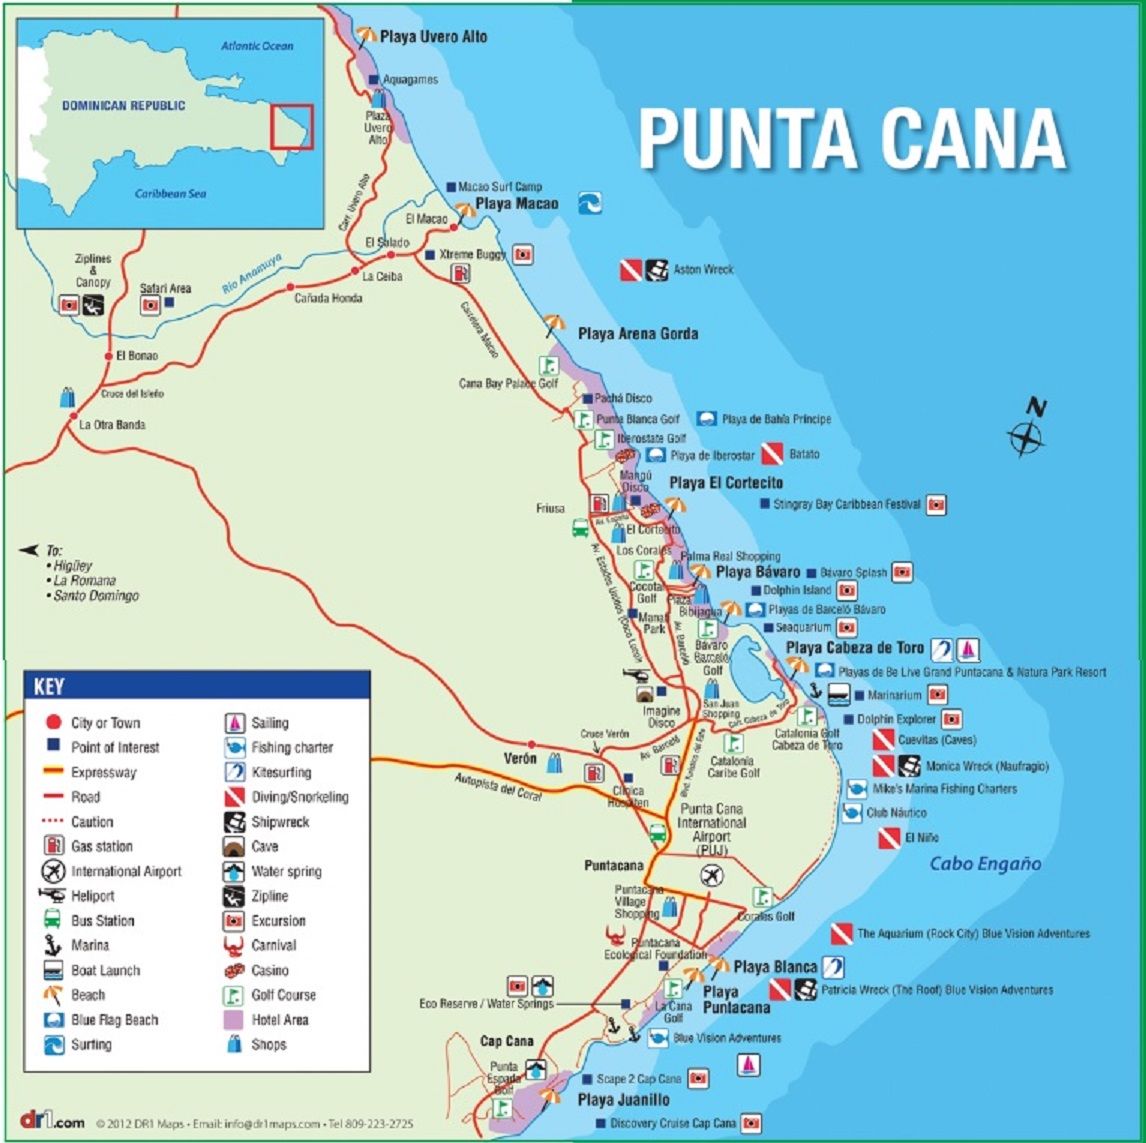 Map Punta Cana Where is Punta Cana? | Punta Cana Map Map Punta Cana